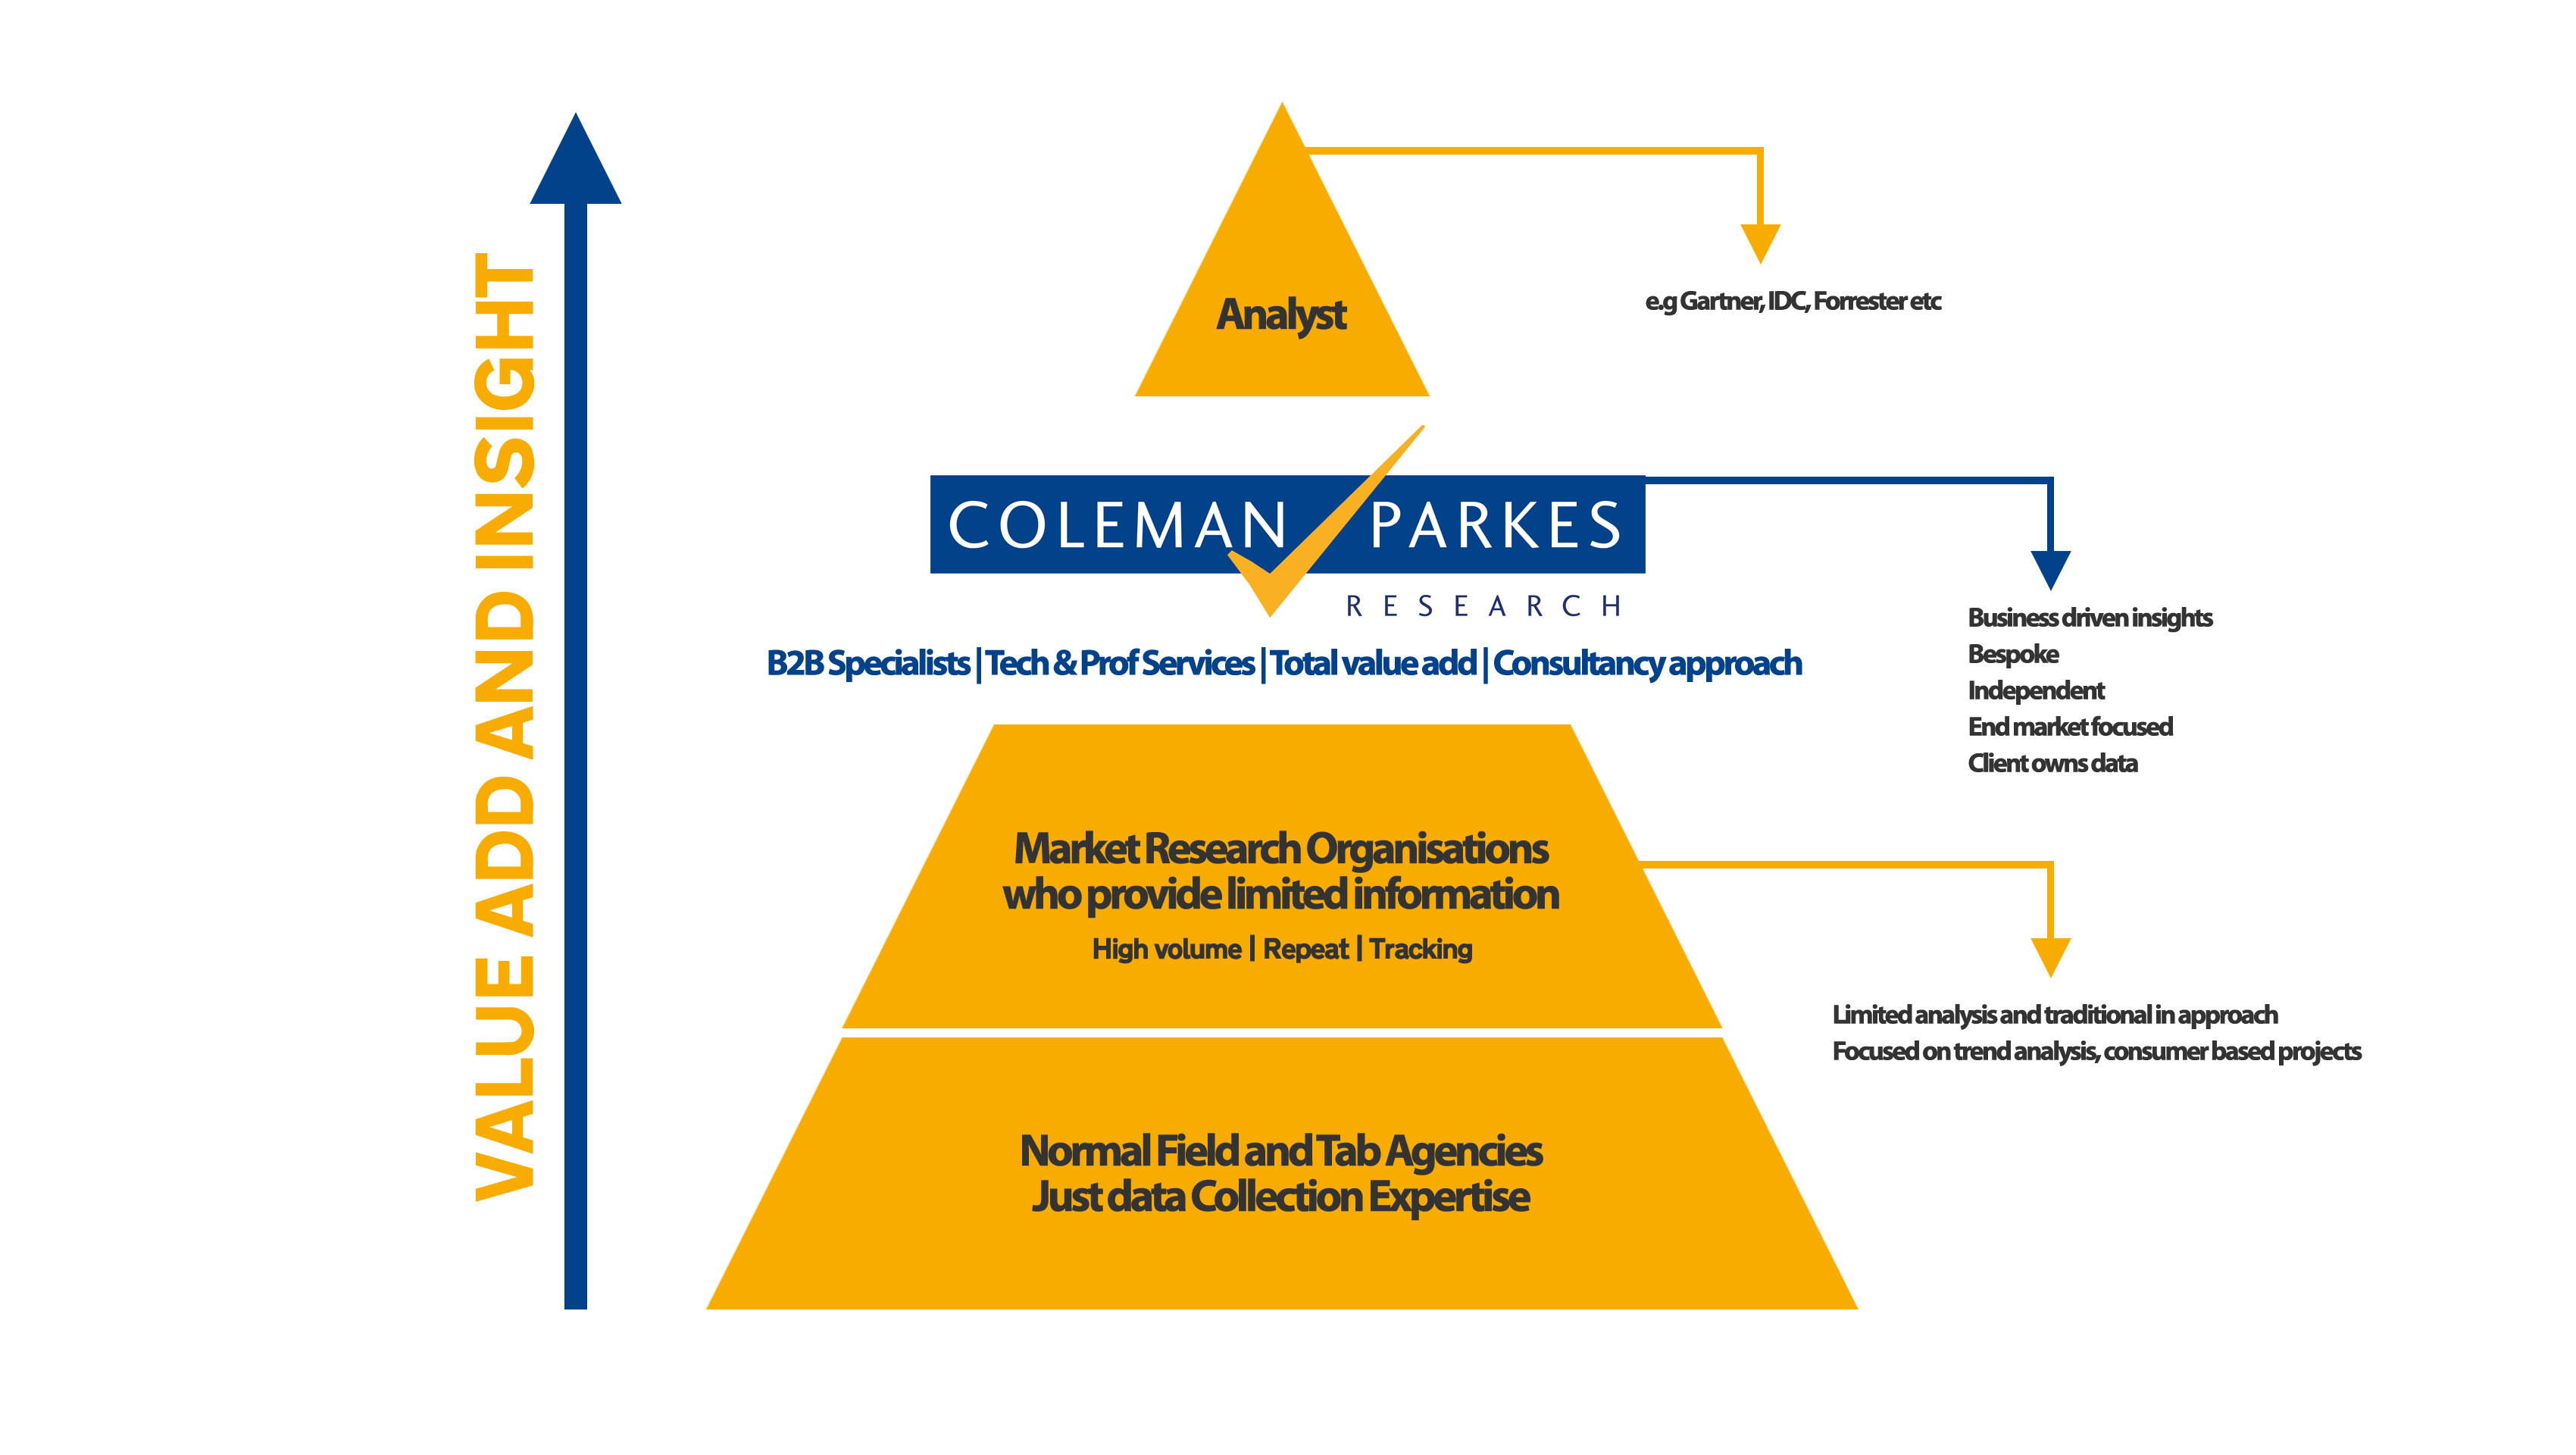 Diagram-colemanparkes